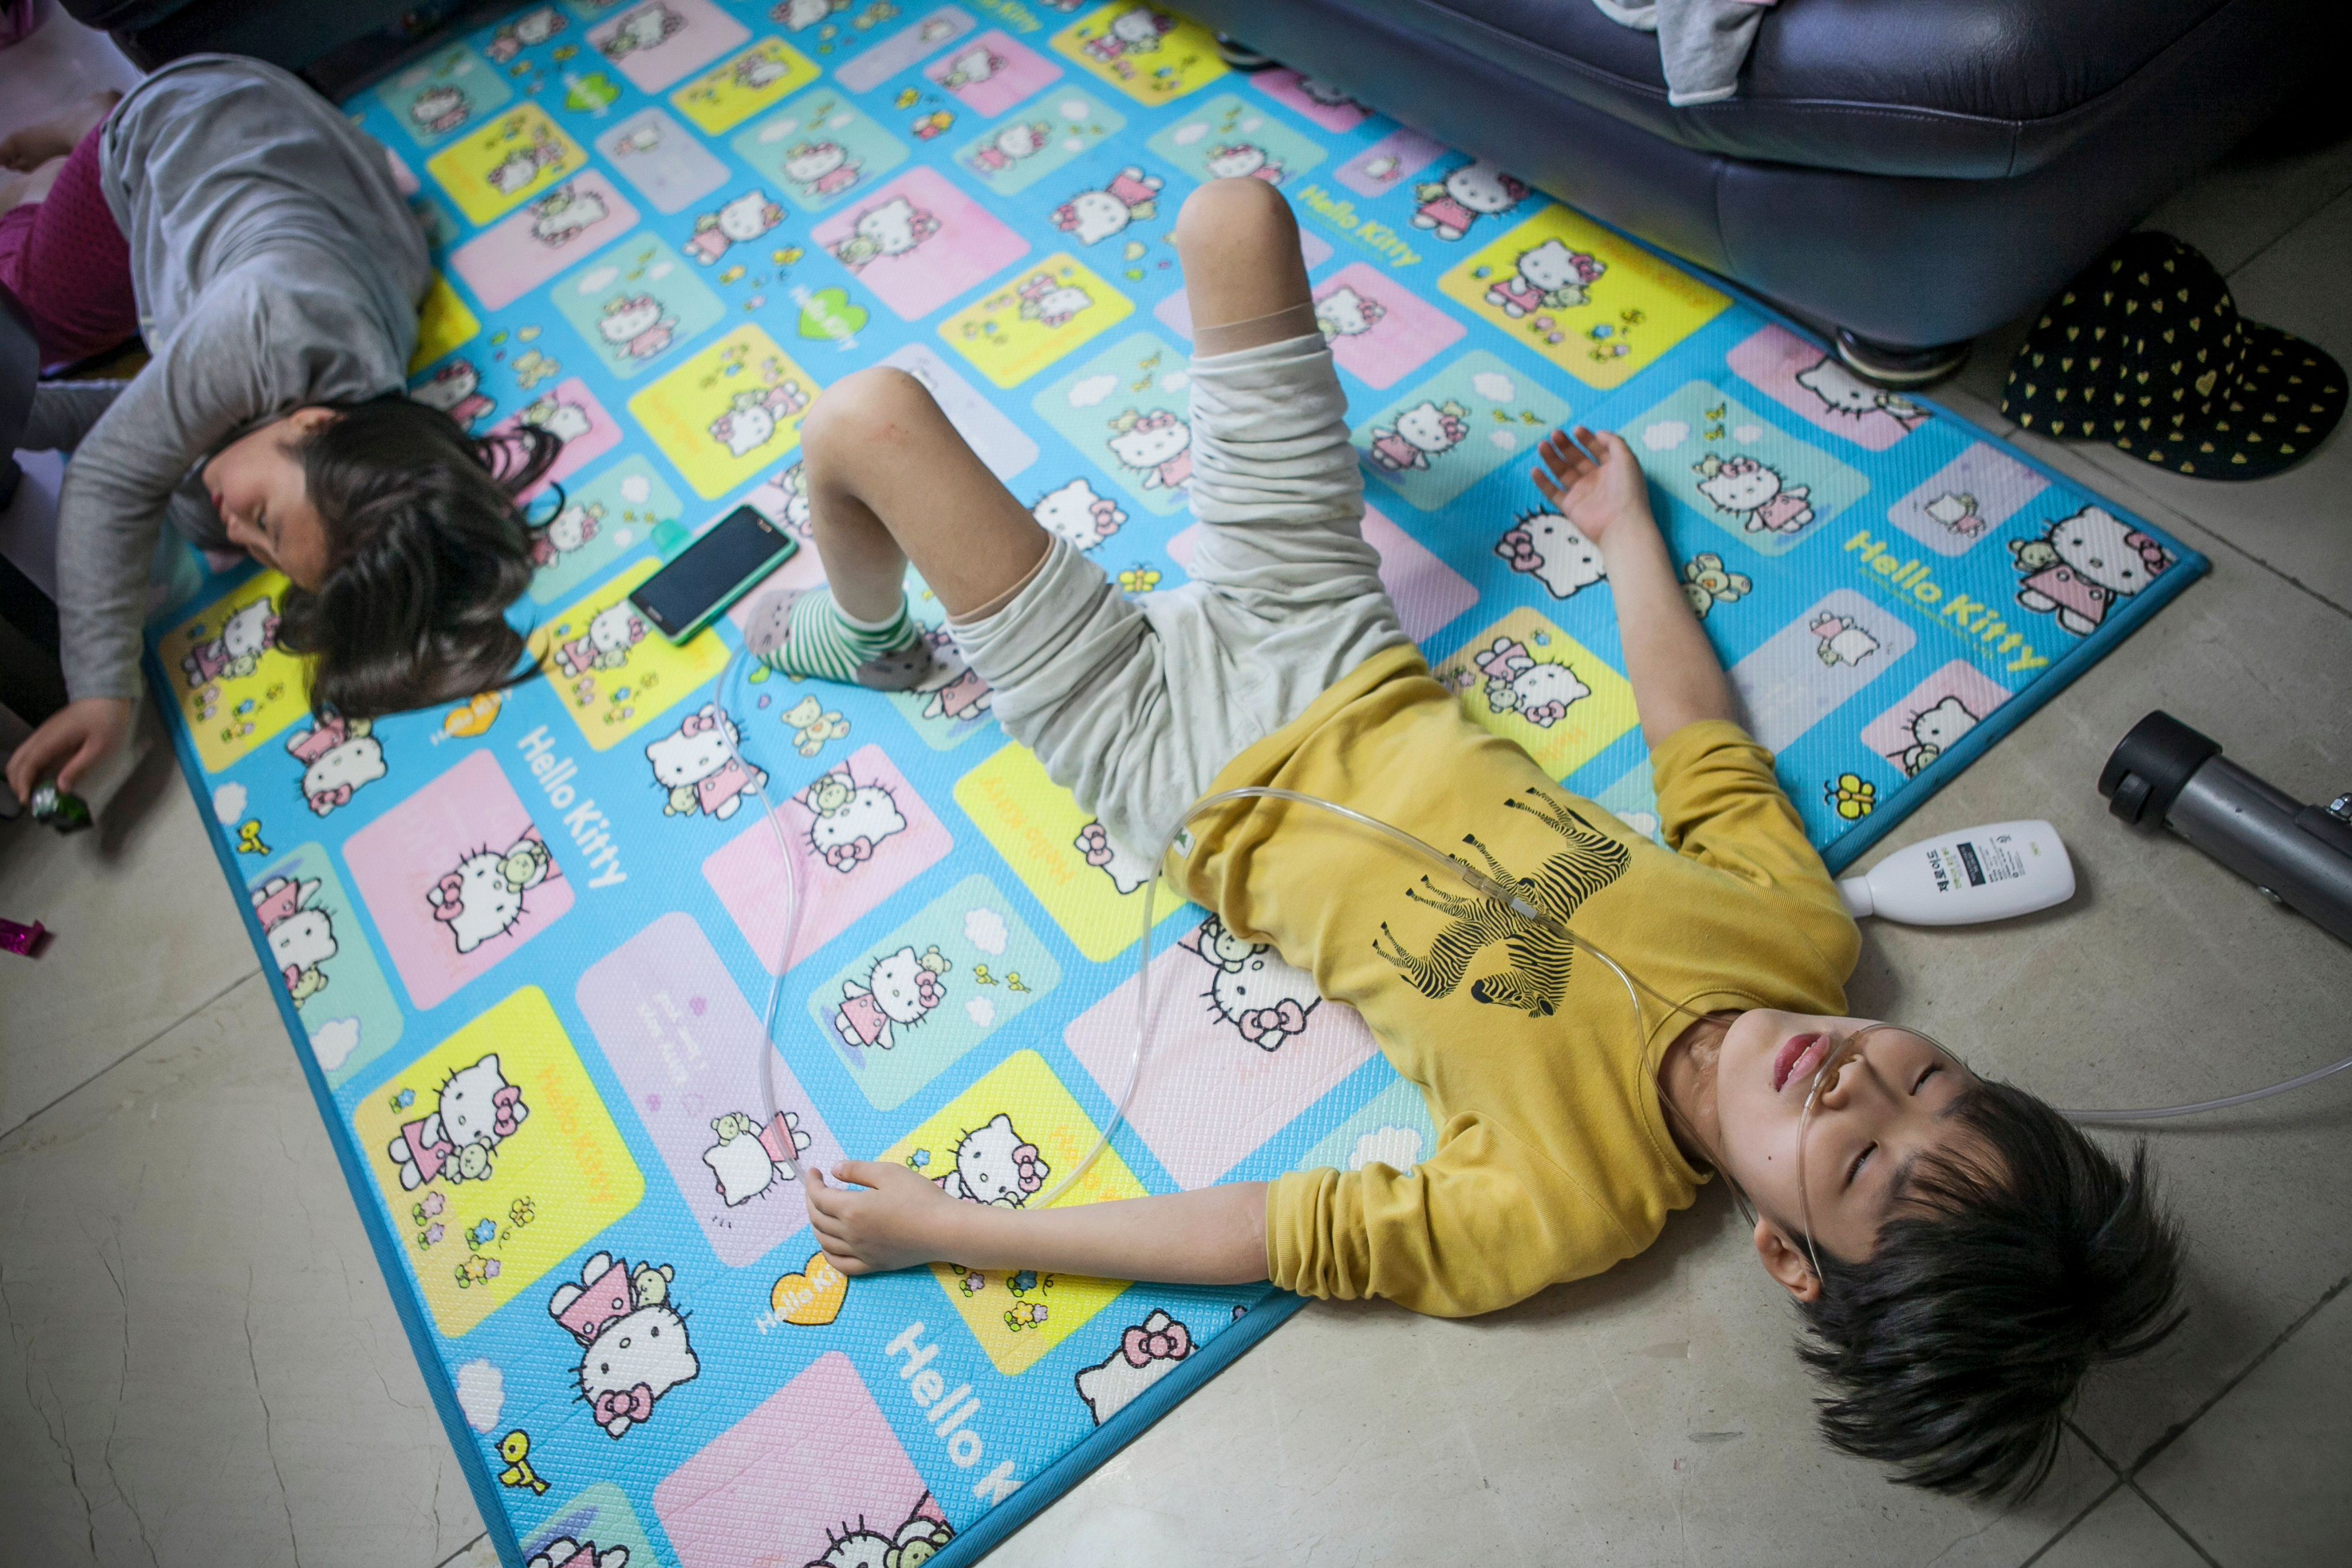 Lim Seong-joon, right, 13, who is suffering from chronic lung disease linked to a humidifier-disinfectant product, lies down on a mat next to his sister at their home in Yongin, South Korea, on May 6, 2016.